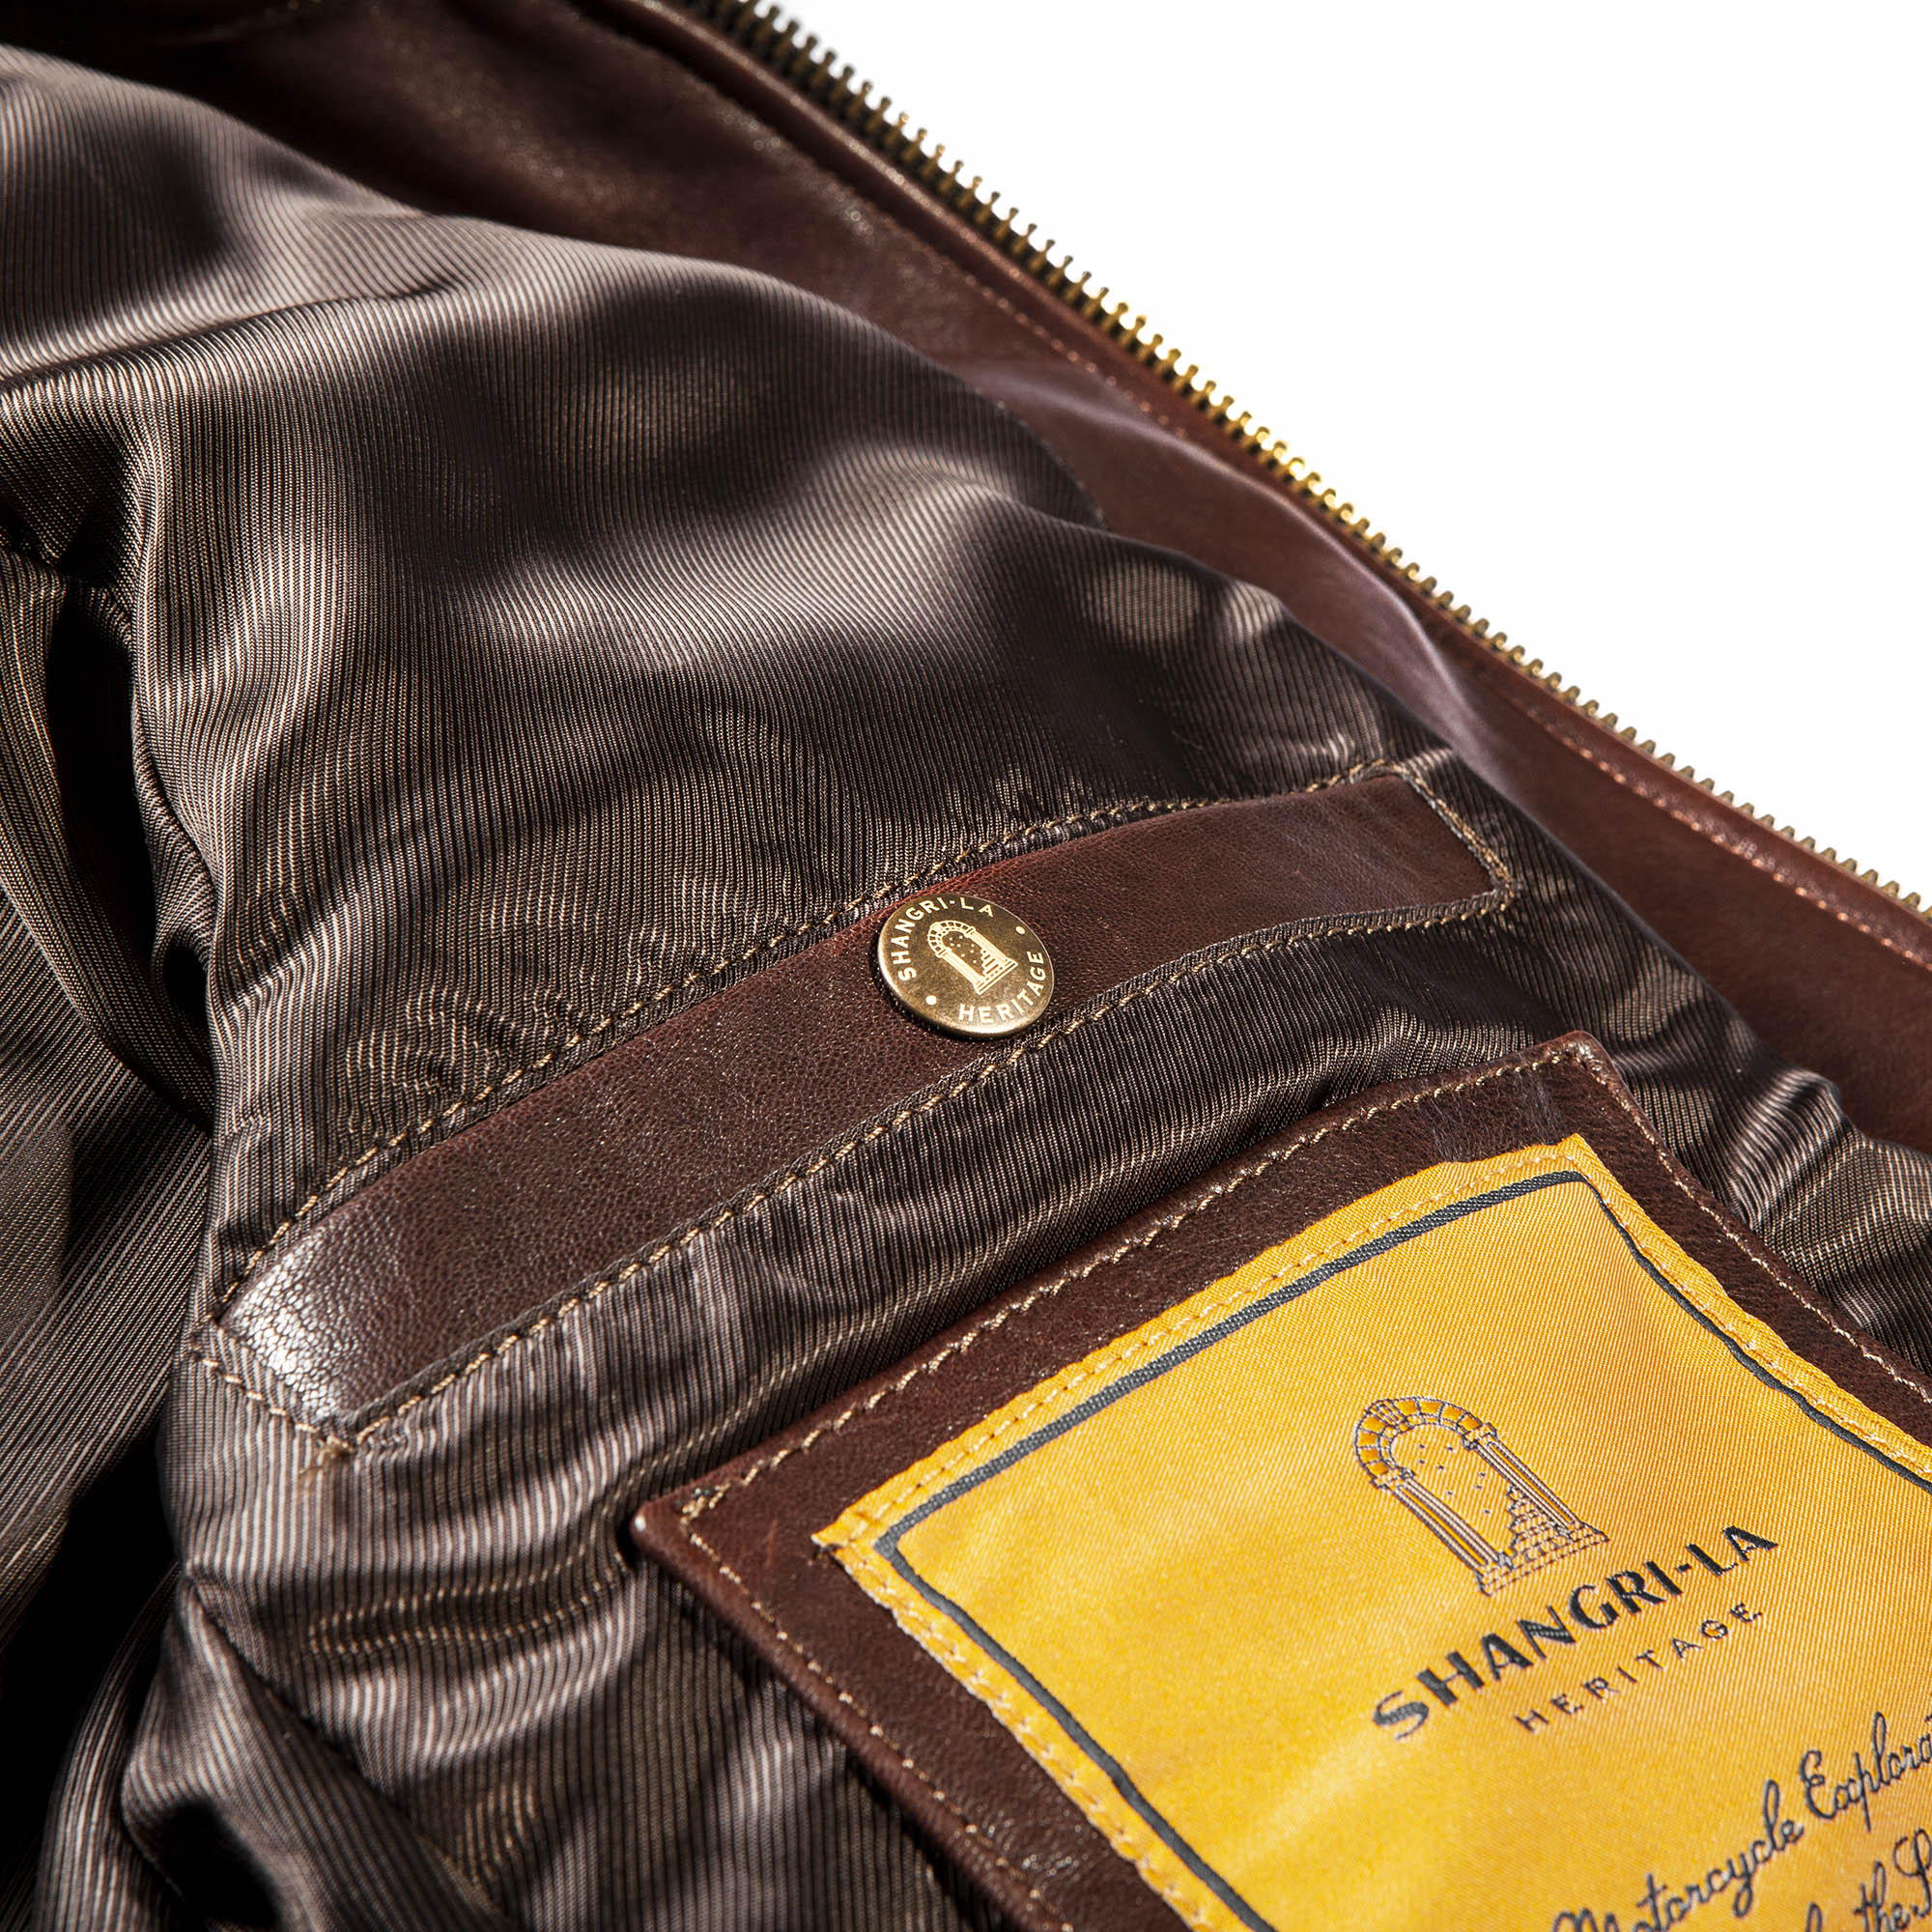 shangri-la-heritage-cafe-racer-brown-lambskin-jacket-still-life-inner-pocket